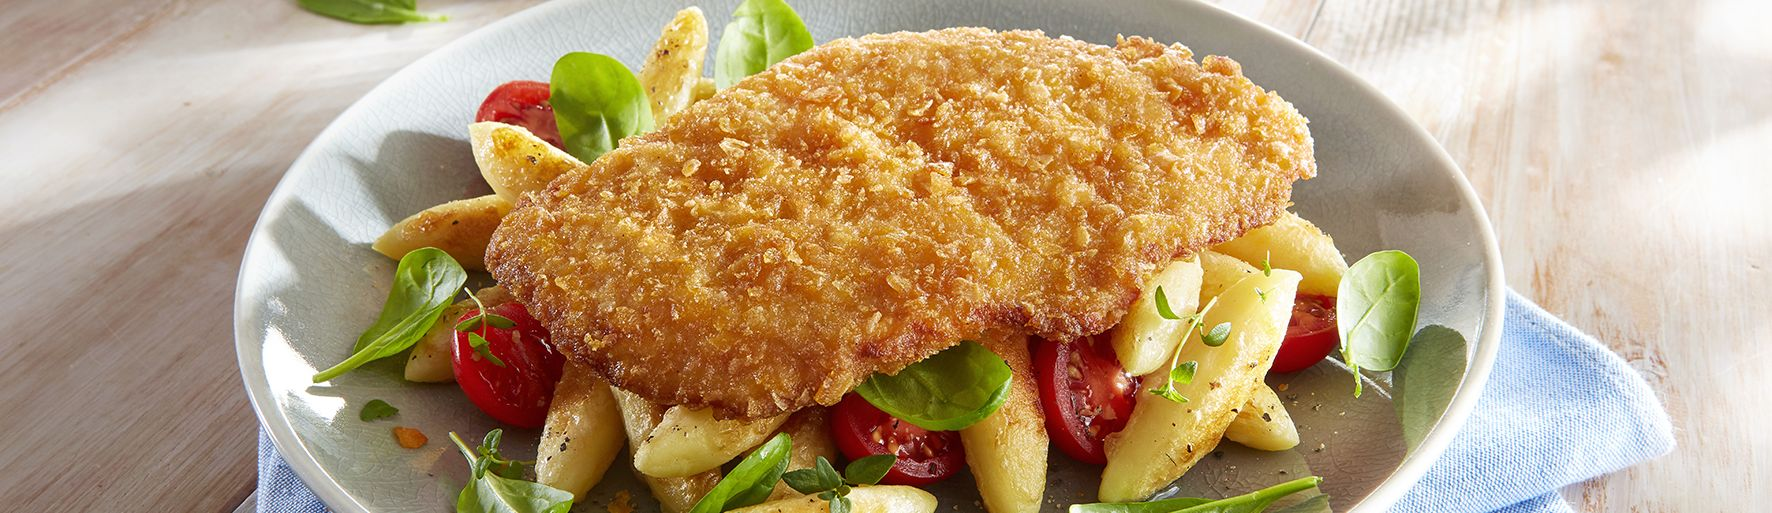 Chicken Escalope with crispy batter